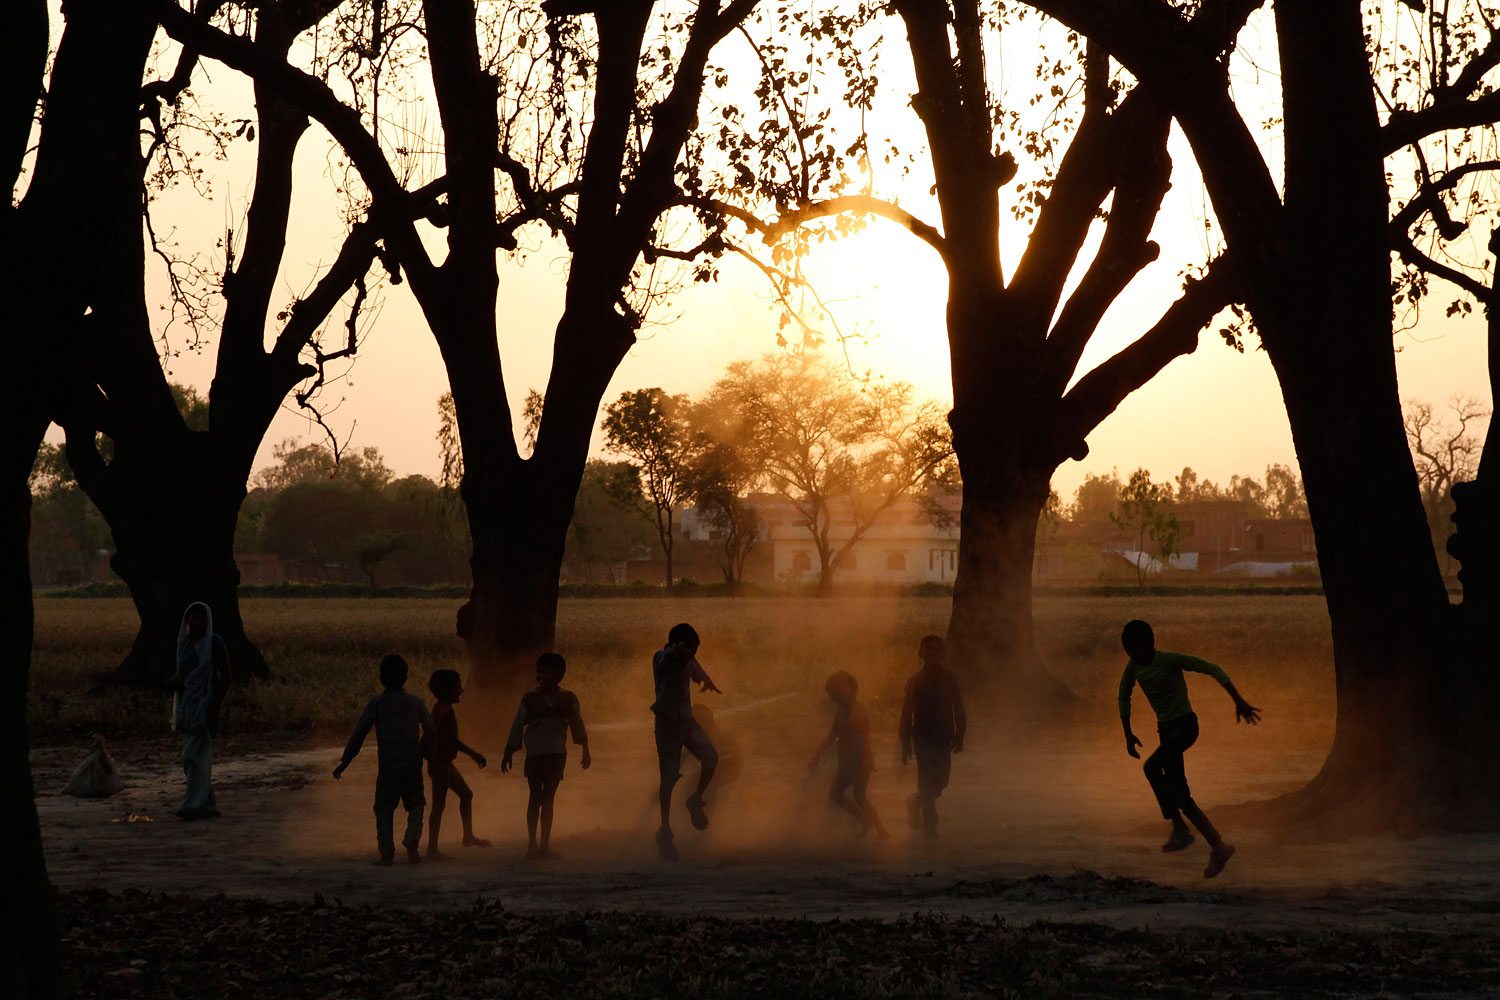 Indian children play at Krishna Nagar village on the outskirts of Allahabad, India, April 7, 2014.